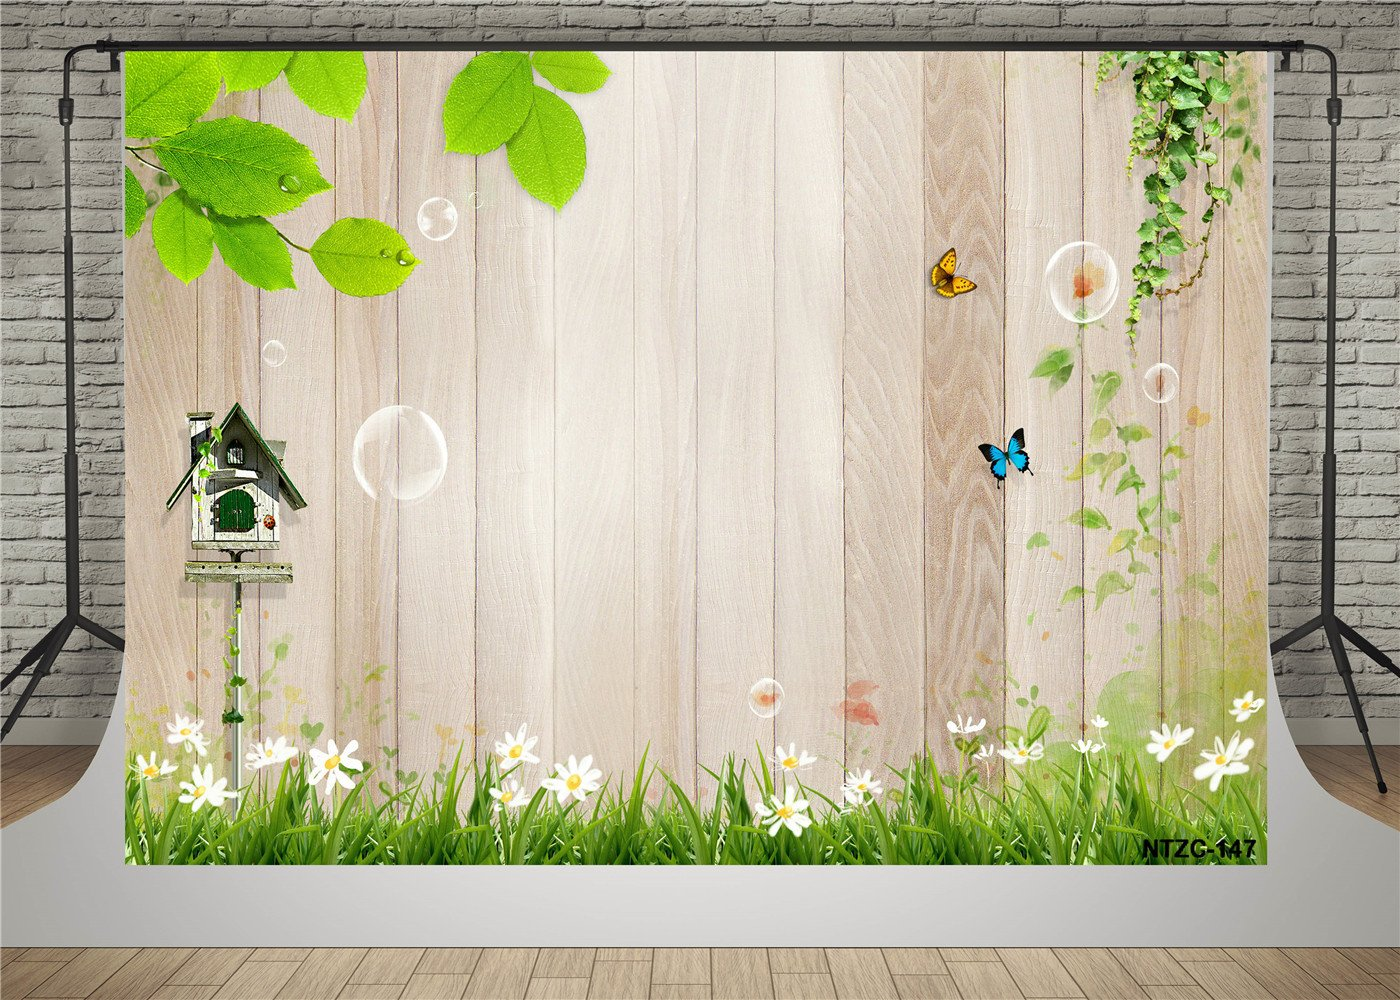 Amazon.com : SUSU 7x5ft/2.2x1.5m Vintage Wood Photography Backdrops Green Grass Photo Background Wooden Wall Photo Booth Wrinkles Free : Camera & Photo